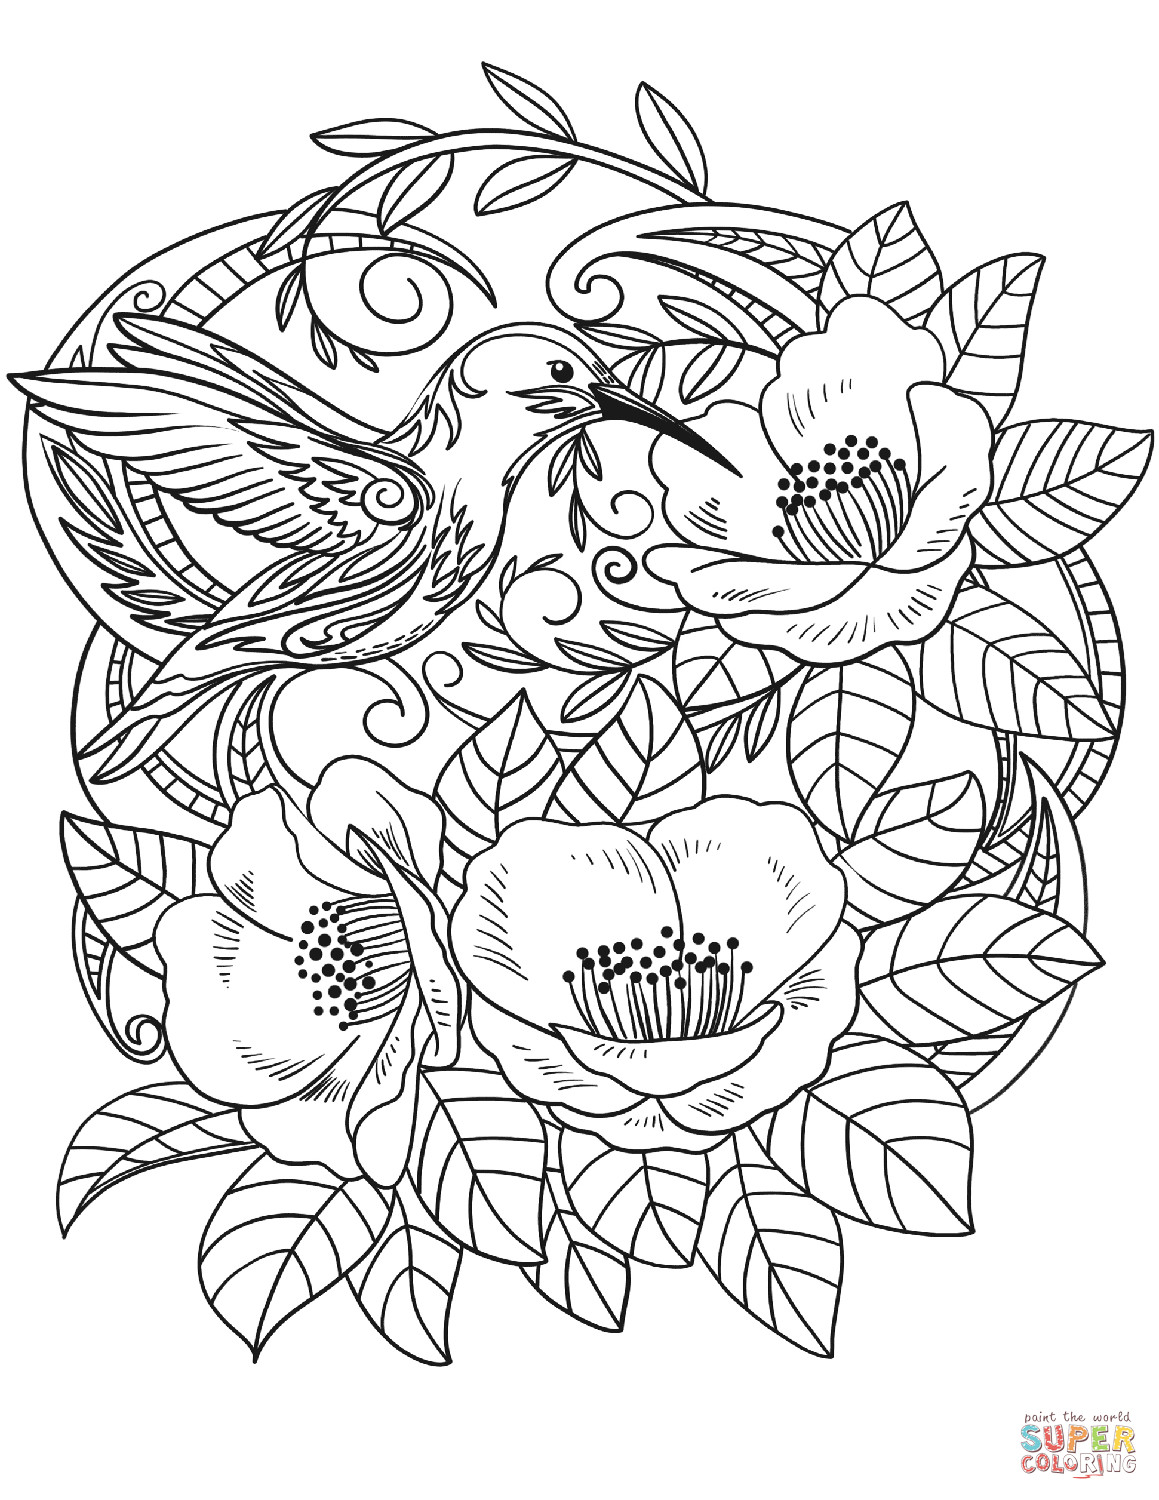 Best ideas about Printable Coloring Pages Flowers . Save or Pin Hummingbird in Flowers coloring page Now.